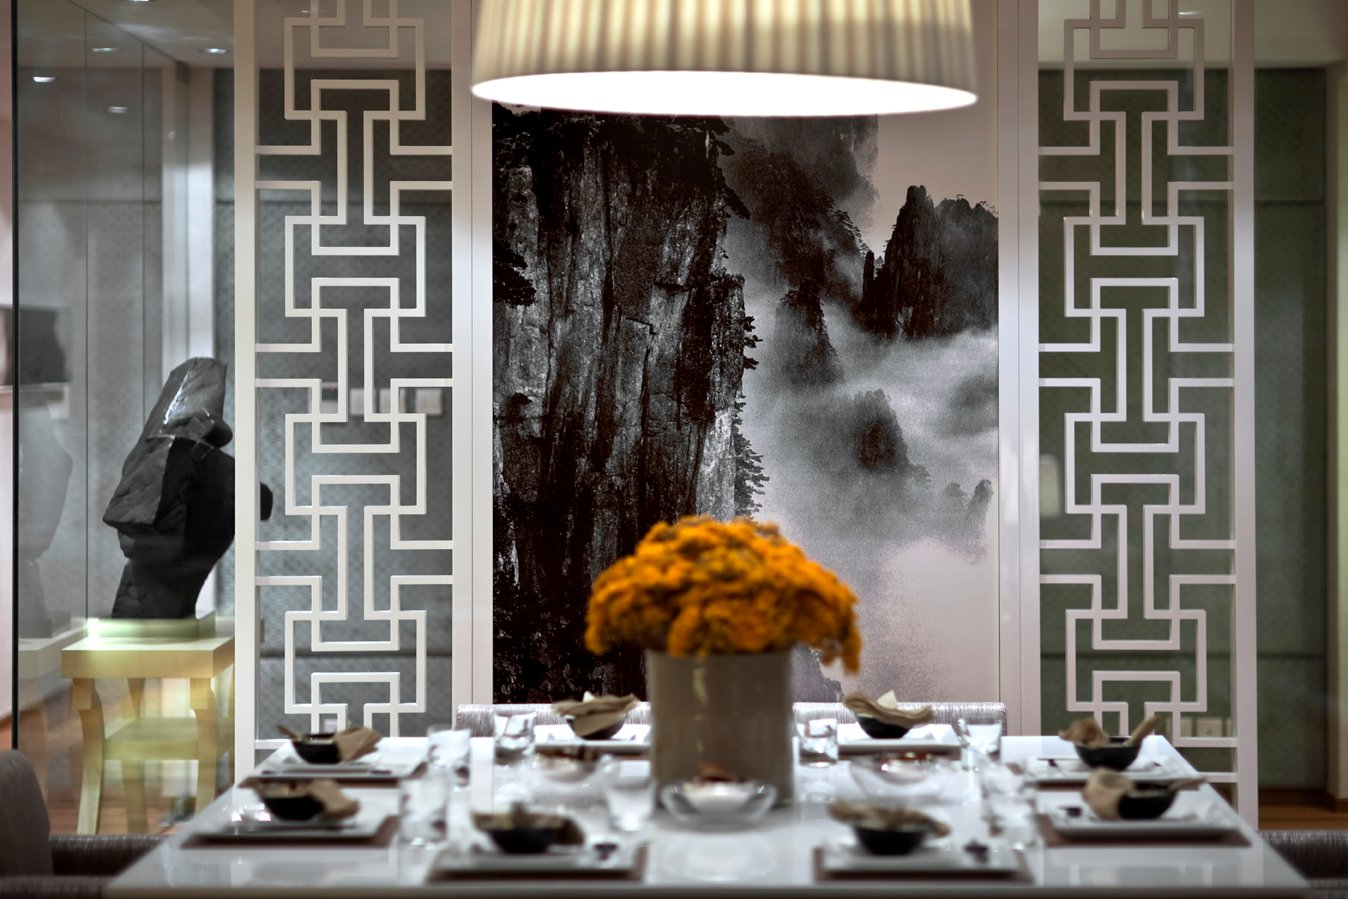 steve-leung-interior-design-project-at-one-lasalle-flat-in-hong-kong